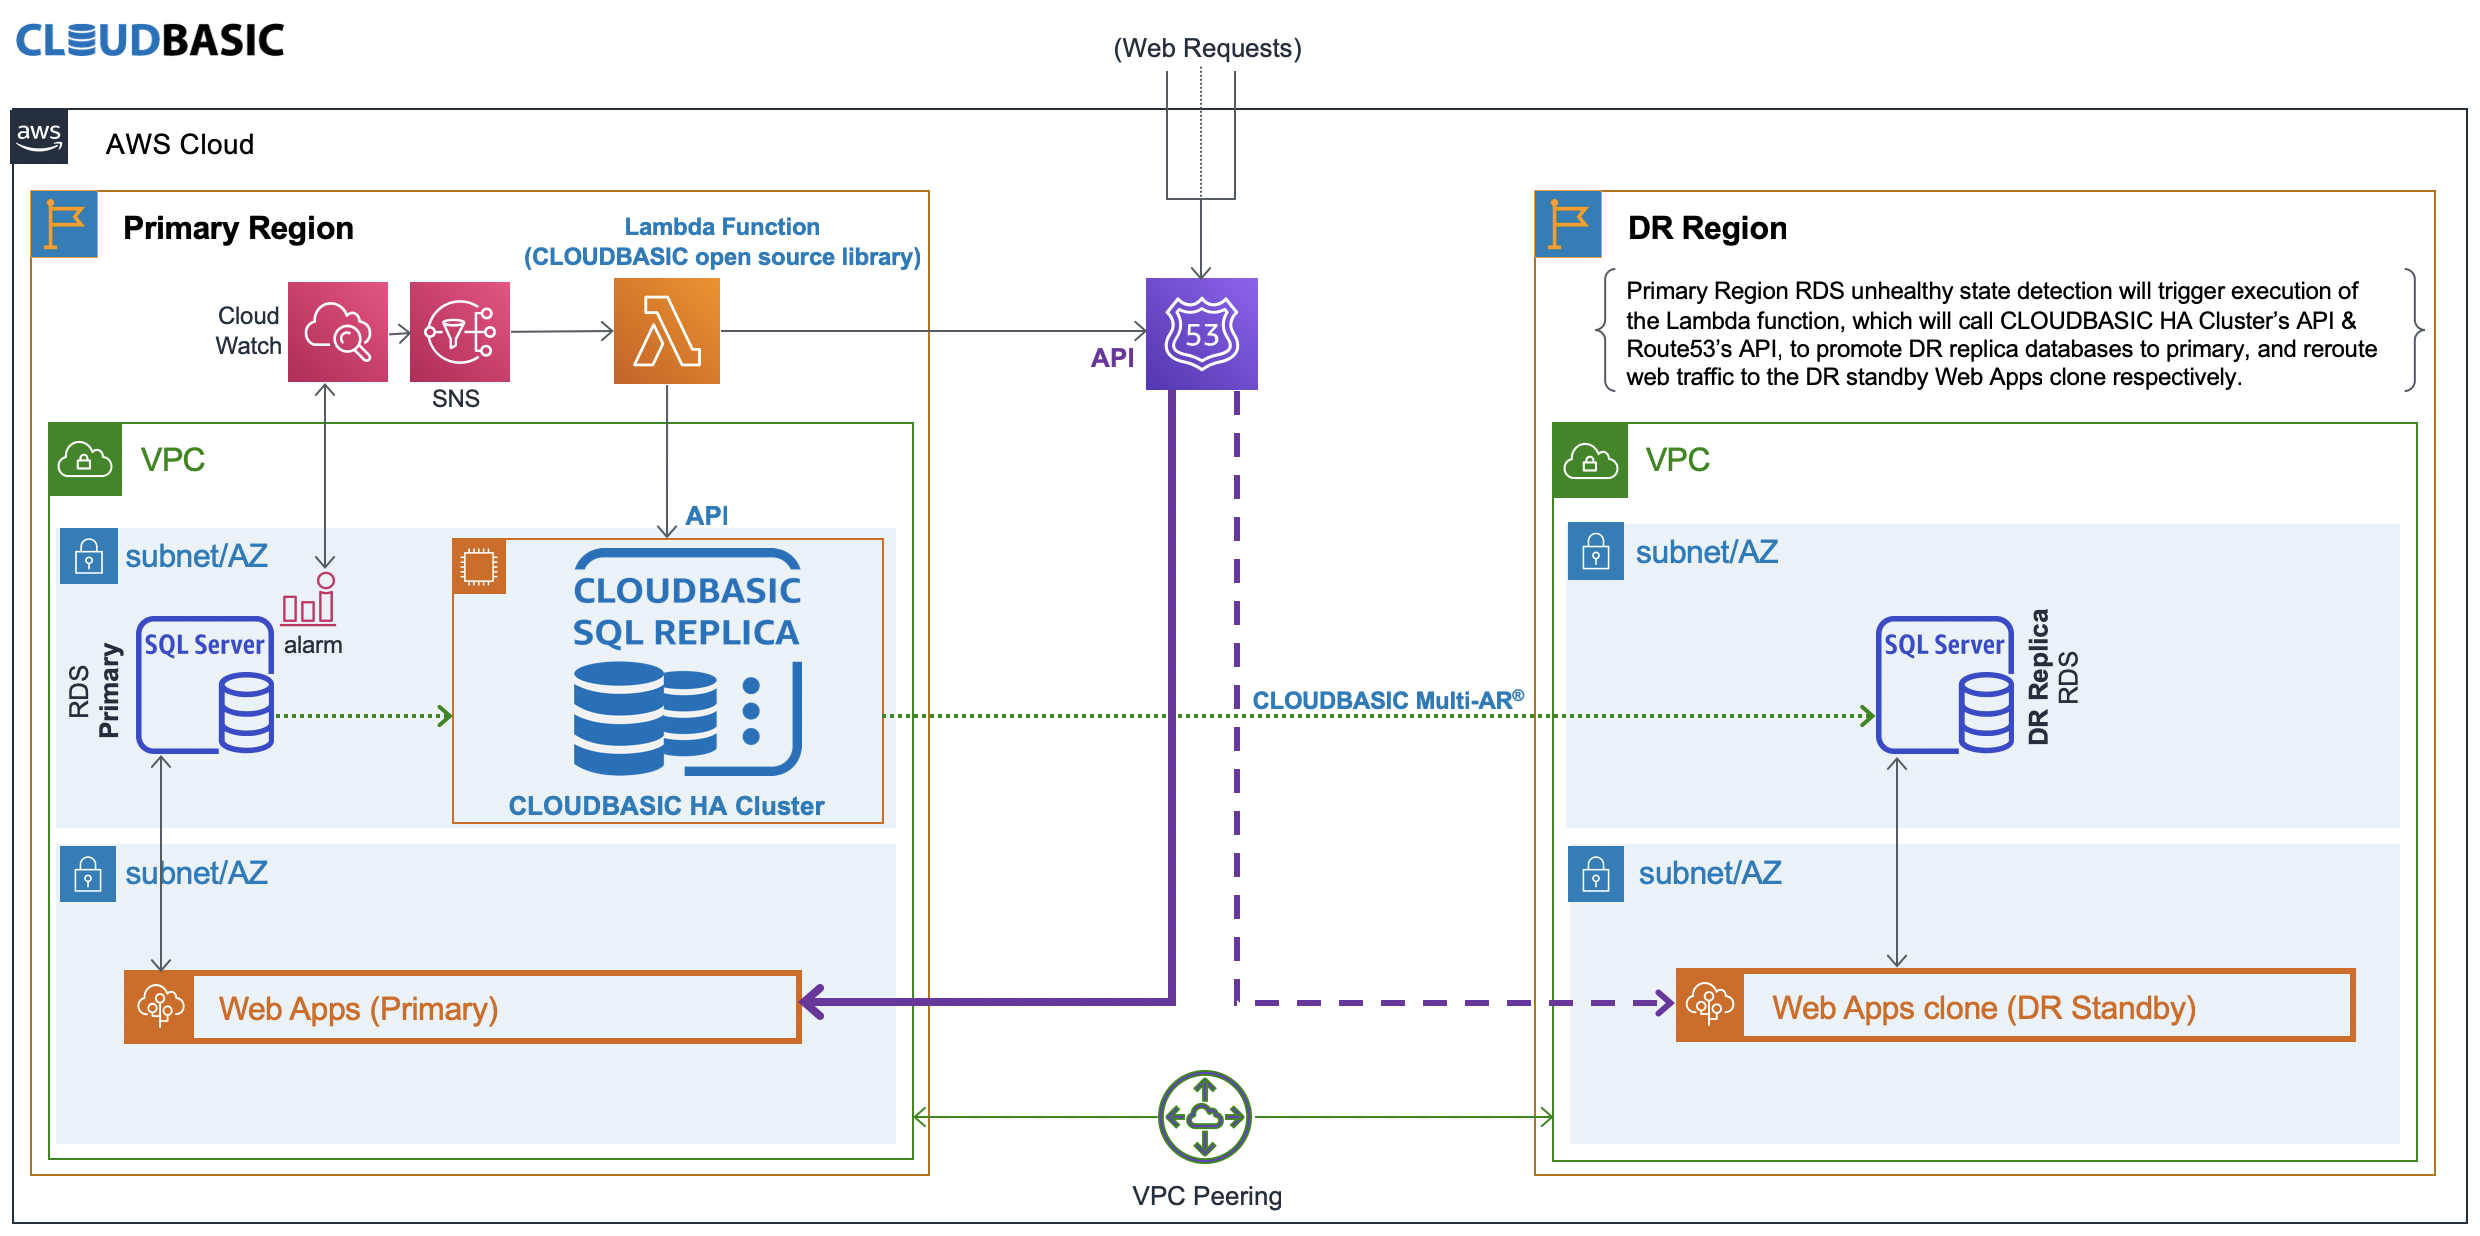 Automated Cross-Region Disaster Recovery on Amazon RDS for SQL Server using CLOUDBASIC for RDS SQL Server Read Replicas and AWS Lambda